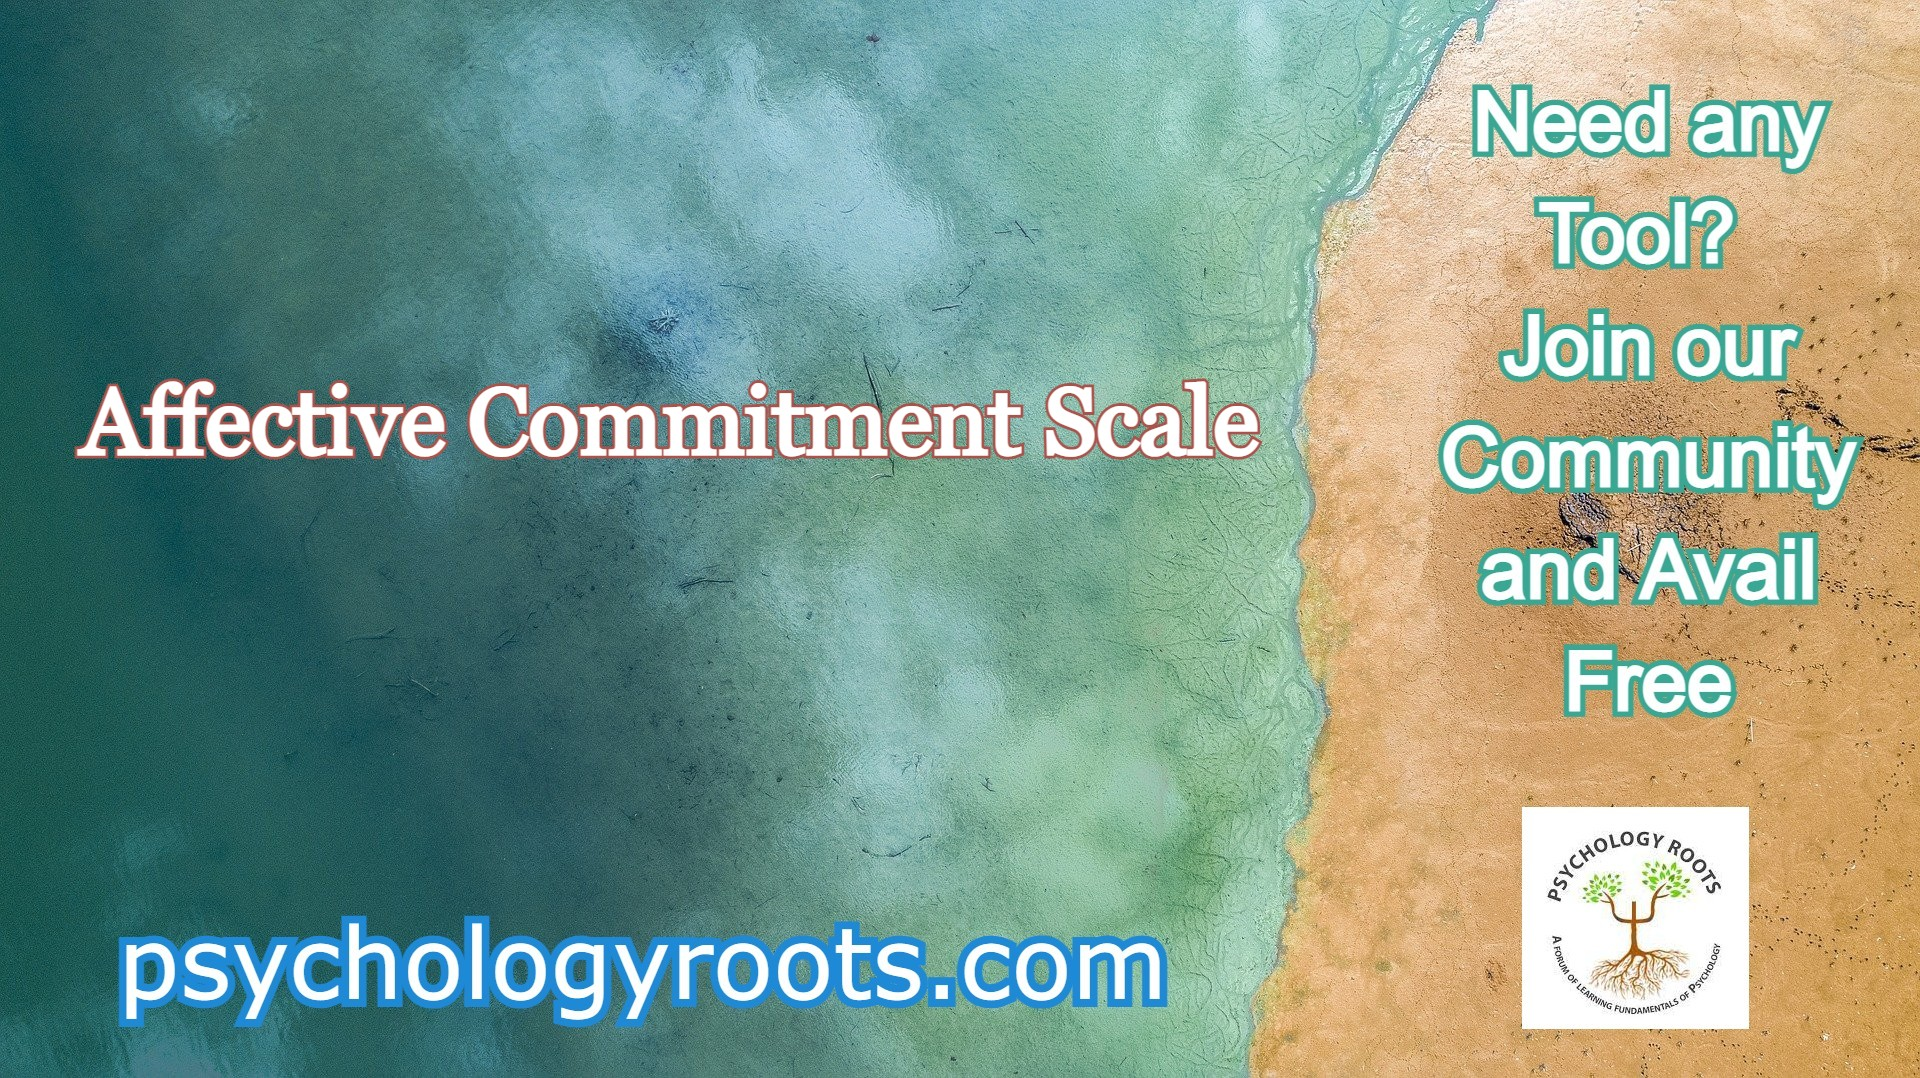 Affective Commitment Scale